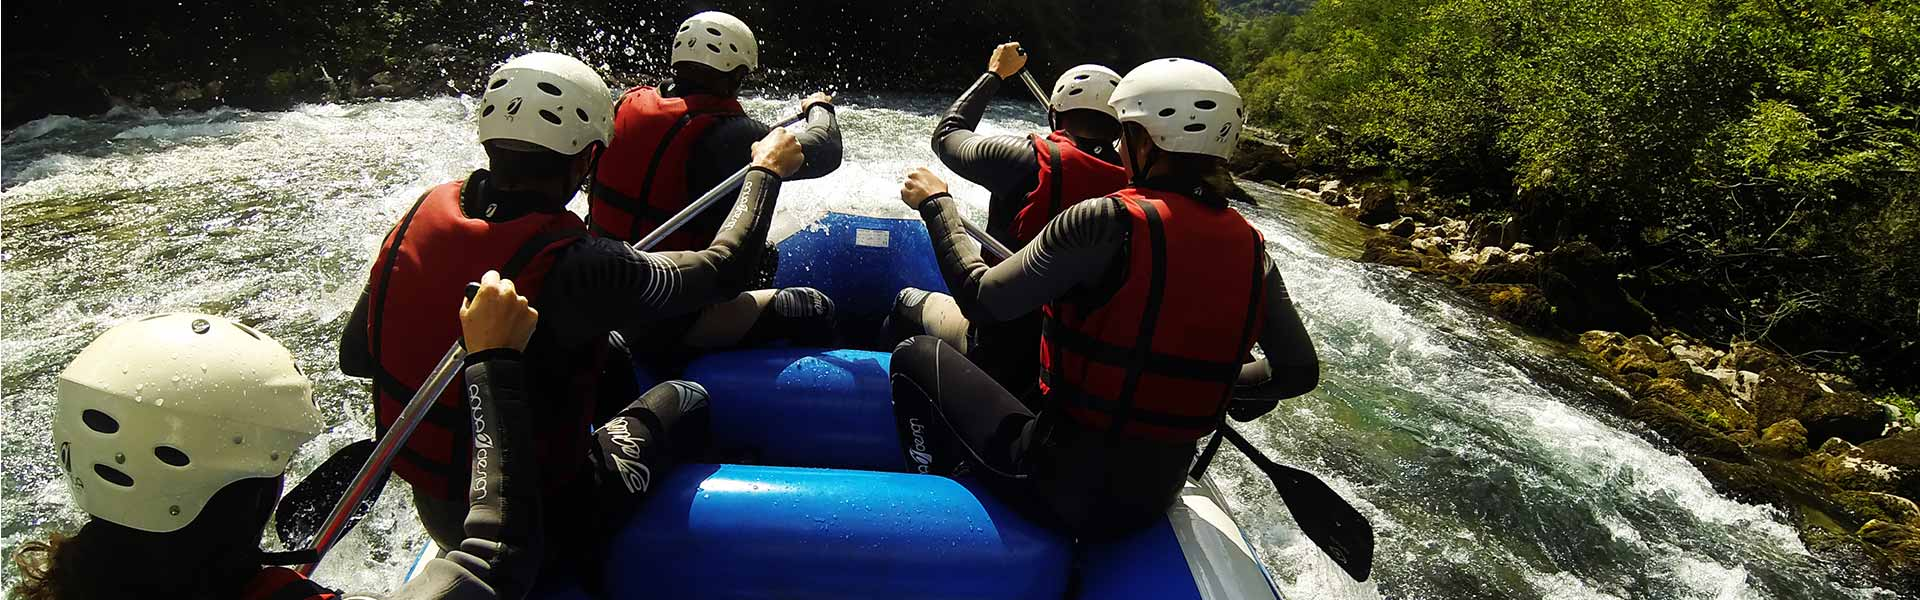 "<h3 style=""color: #ffffff;"">Rafting expirience</h3> <p>Emotional expirience trough Tara's rapids</p>"